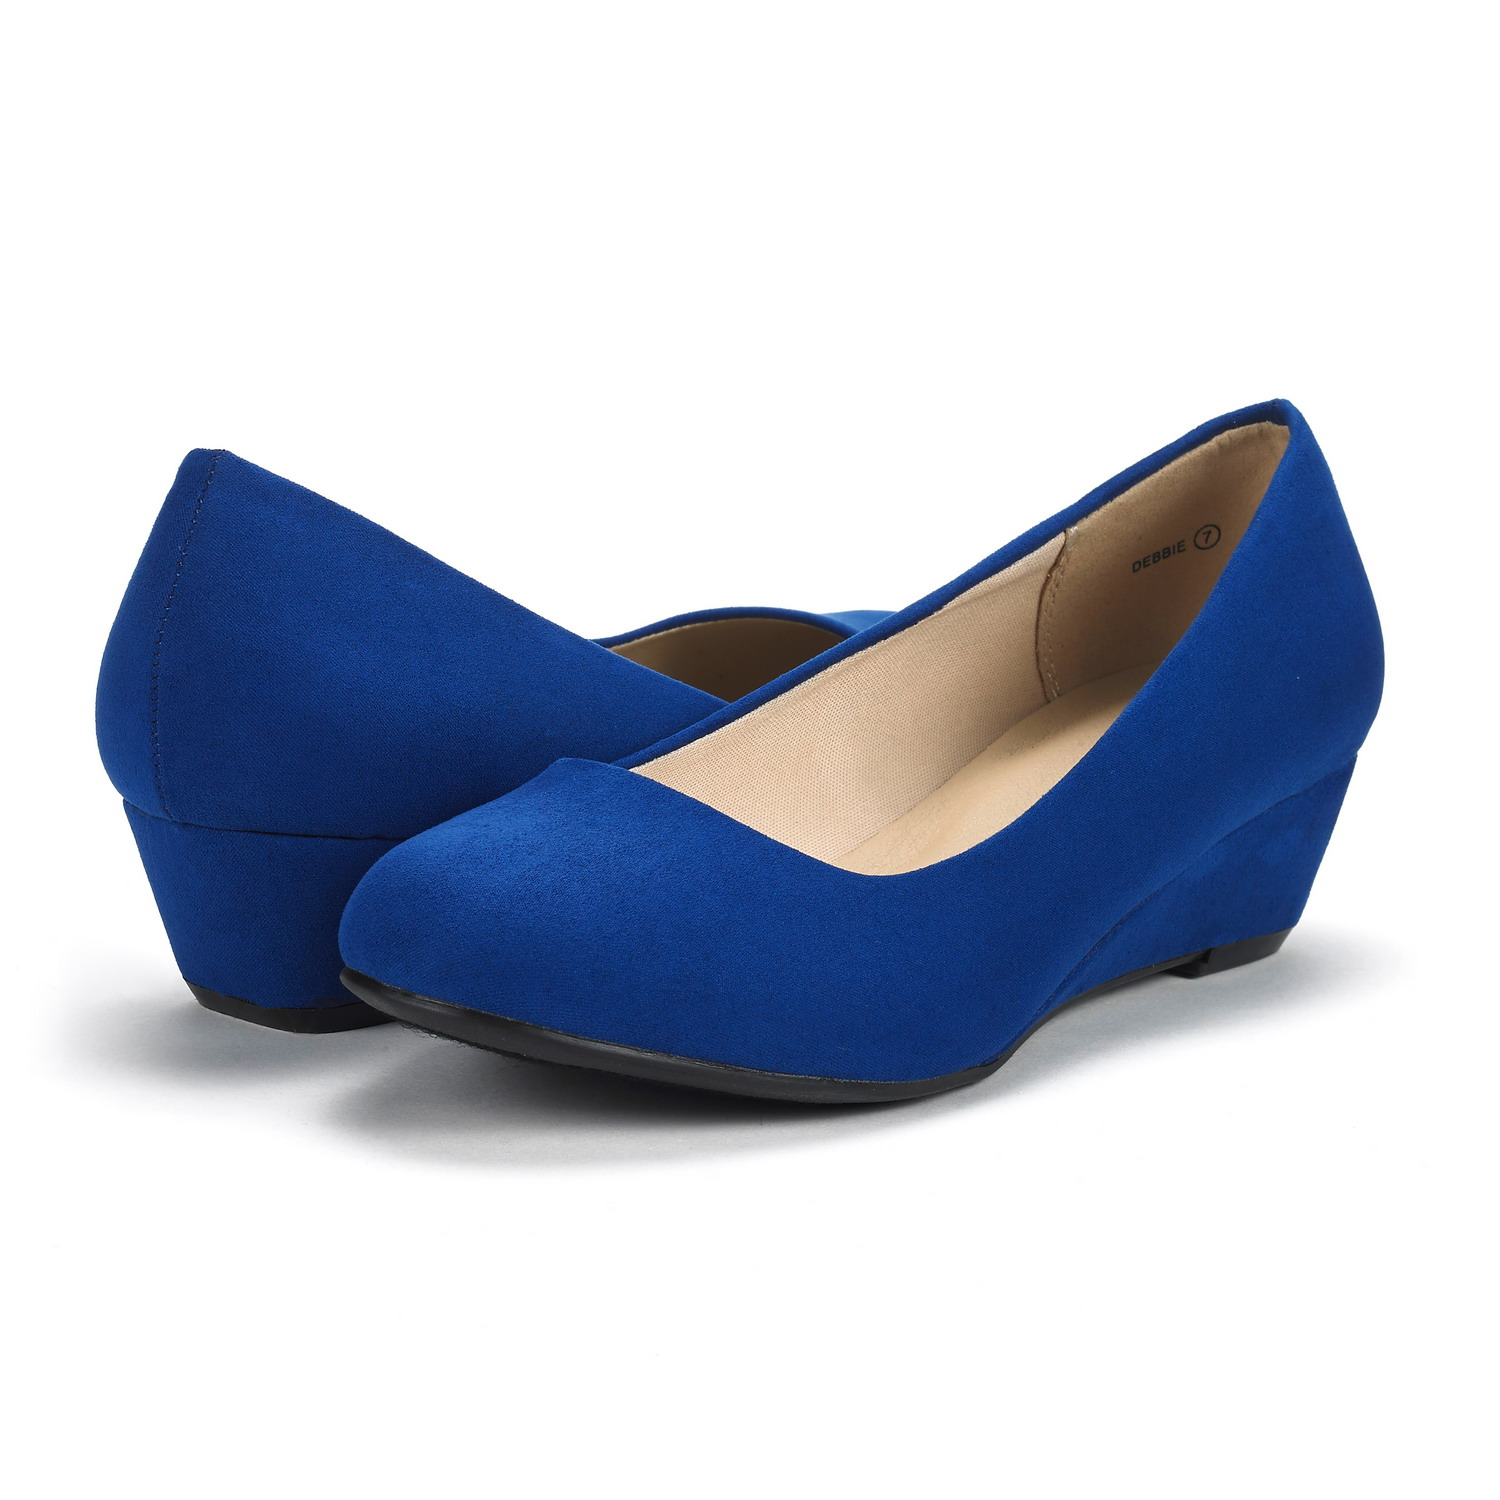 DREAM-PAIRS-Women-039-s-Mid-Wedge-Heel-Shoes-Slip-On-Comfort-Dress-Shoes-Suede-PU thumbnail 28